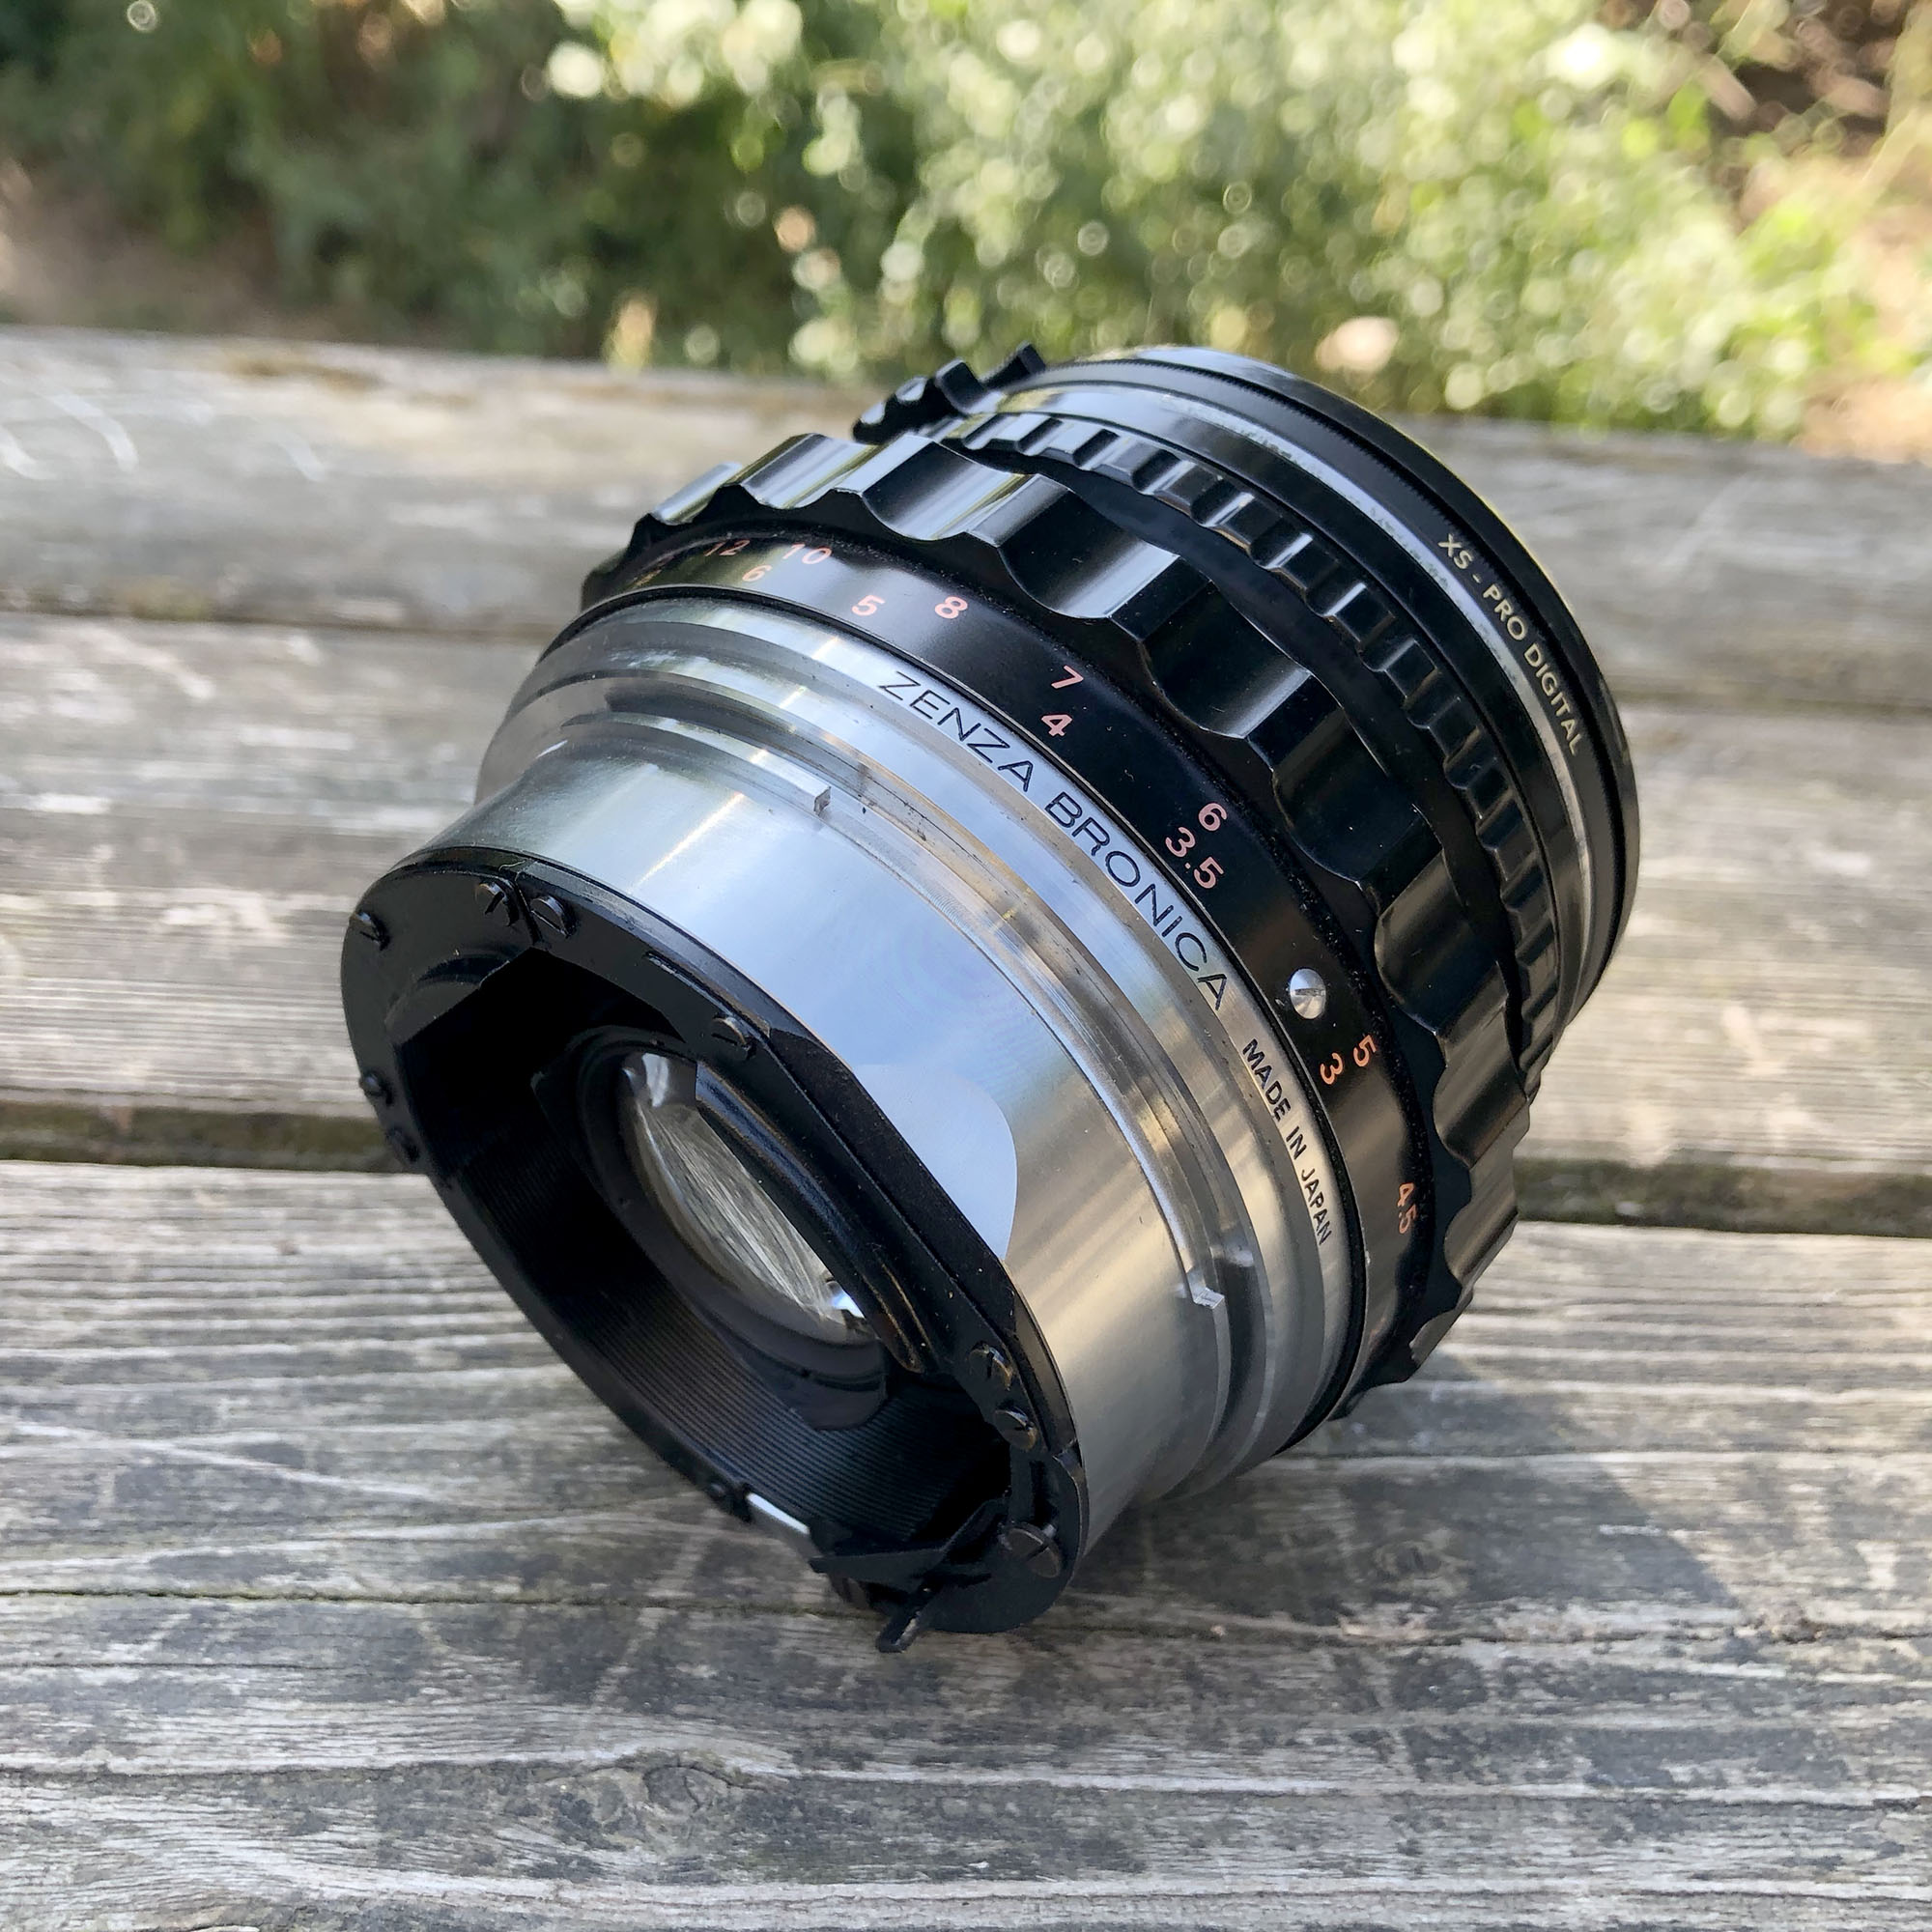 Nikkor 75mm lens for Bronica S2